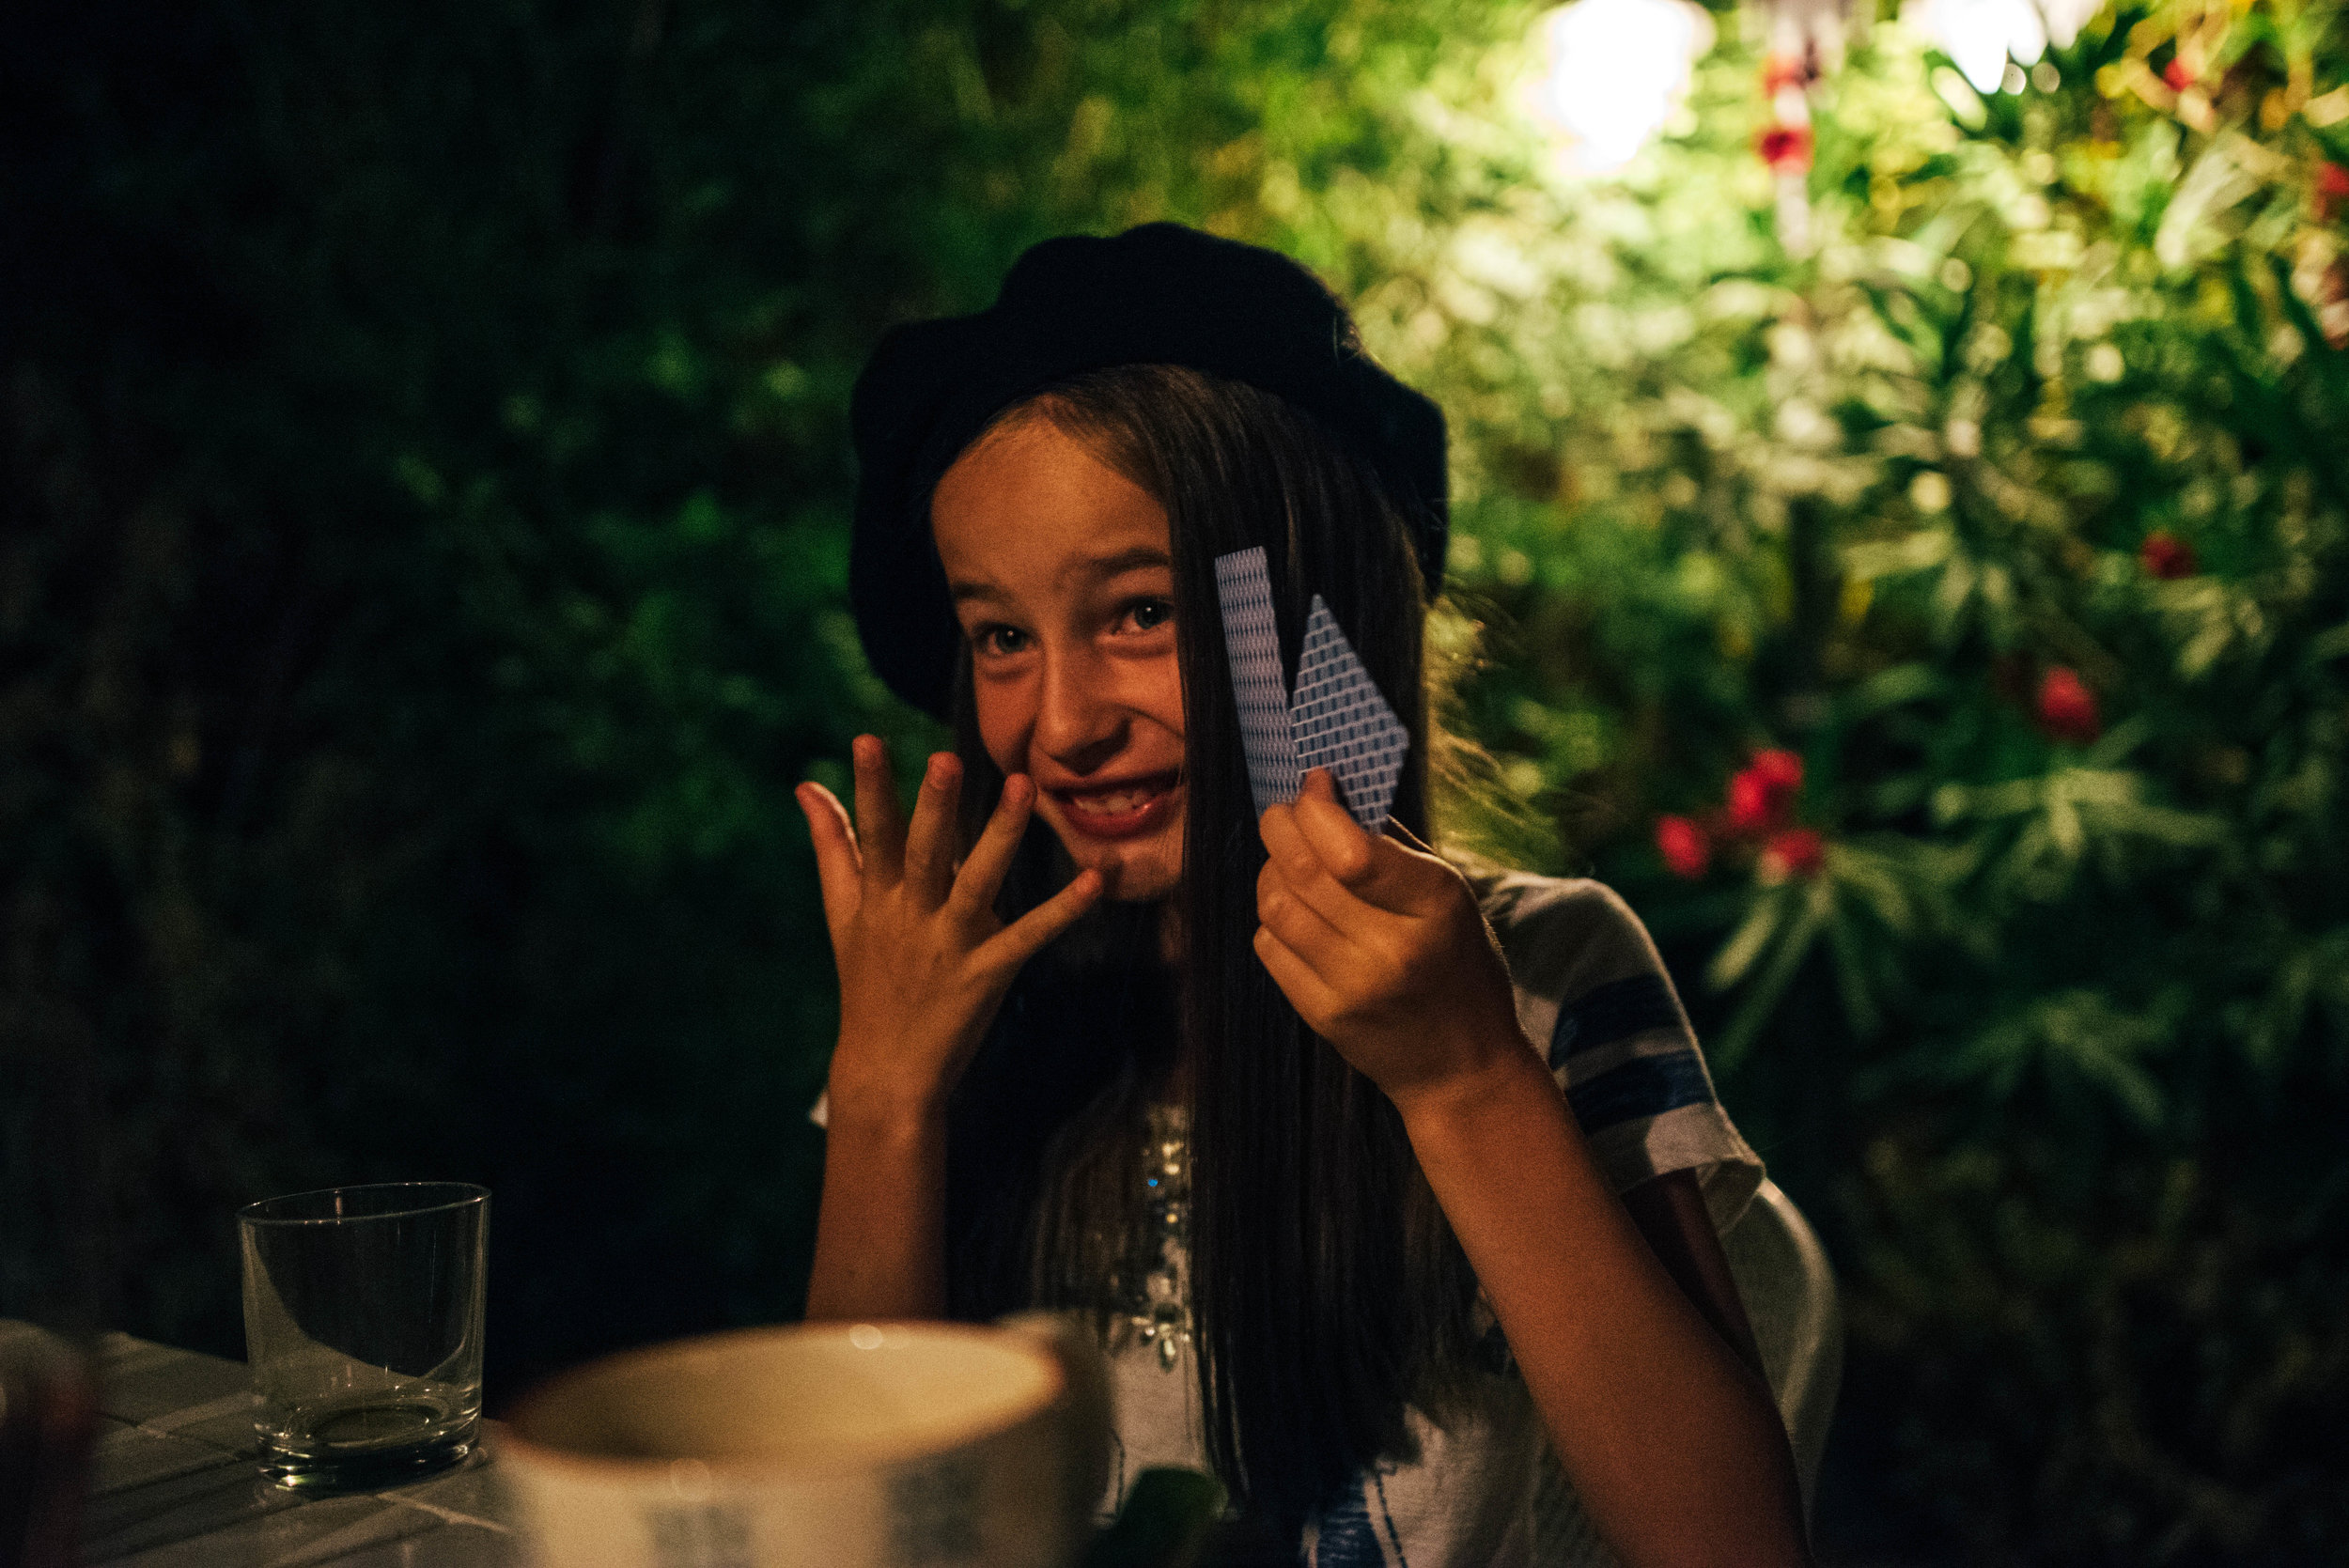 Young girl in beret plays cards in garden at night Essex UK Documentary Portrait Photographer